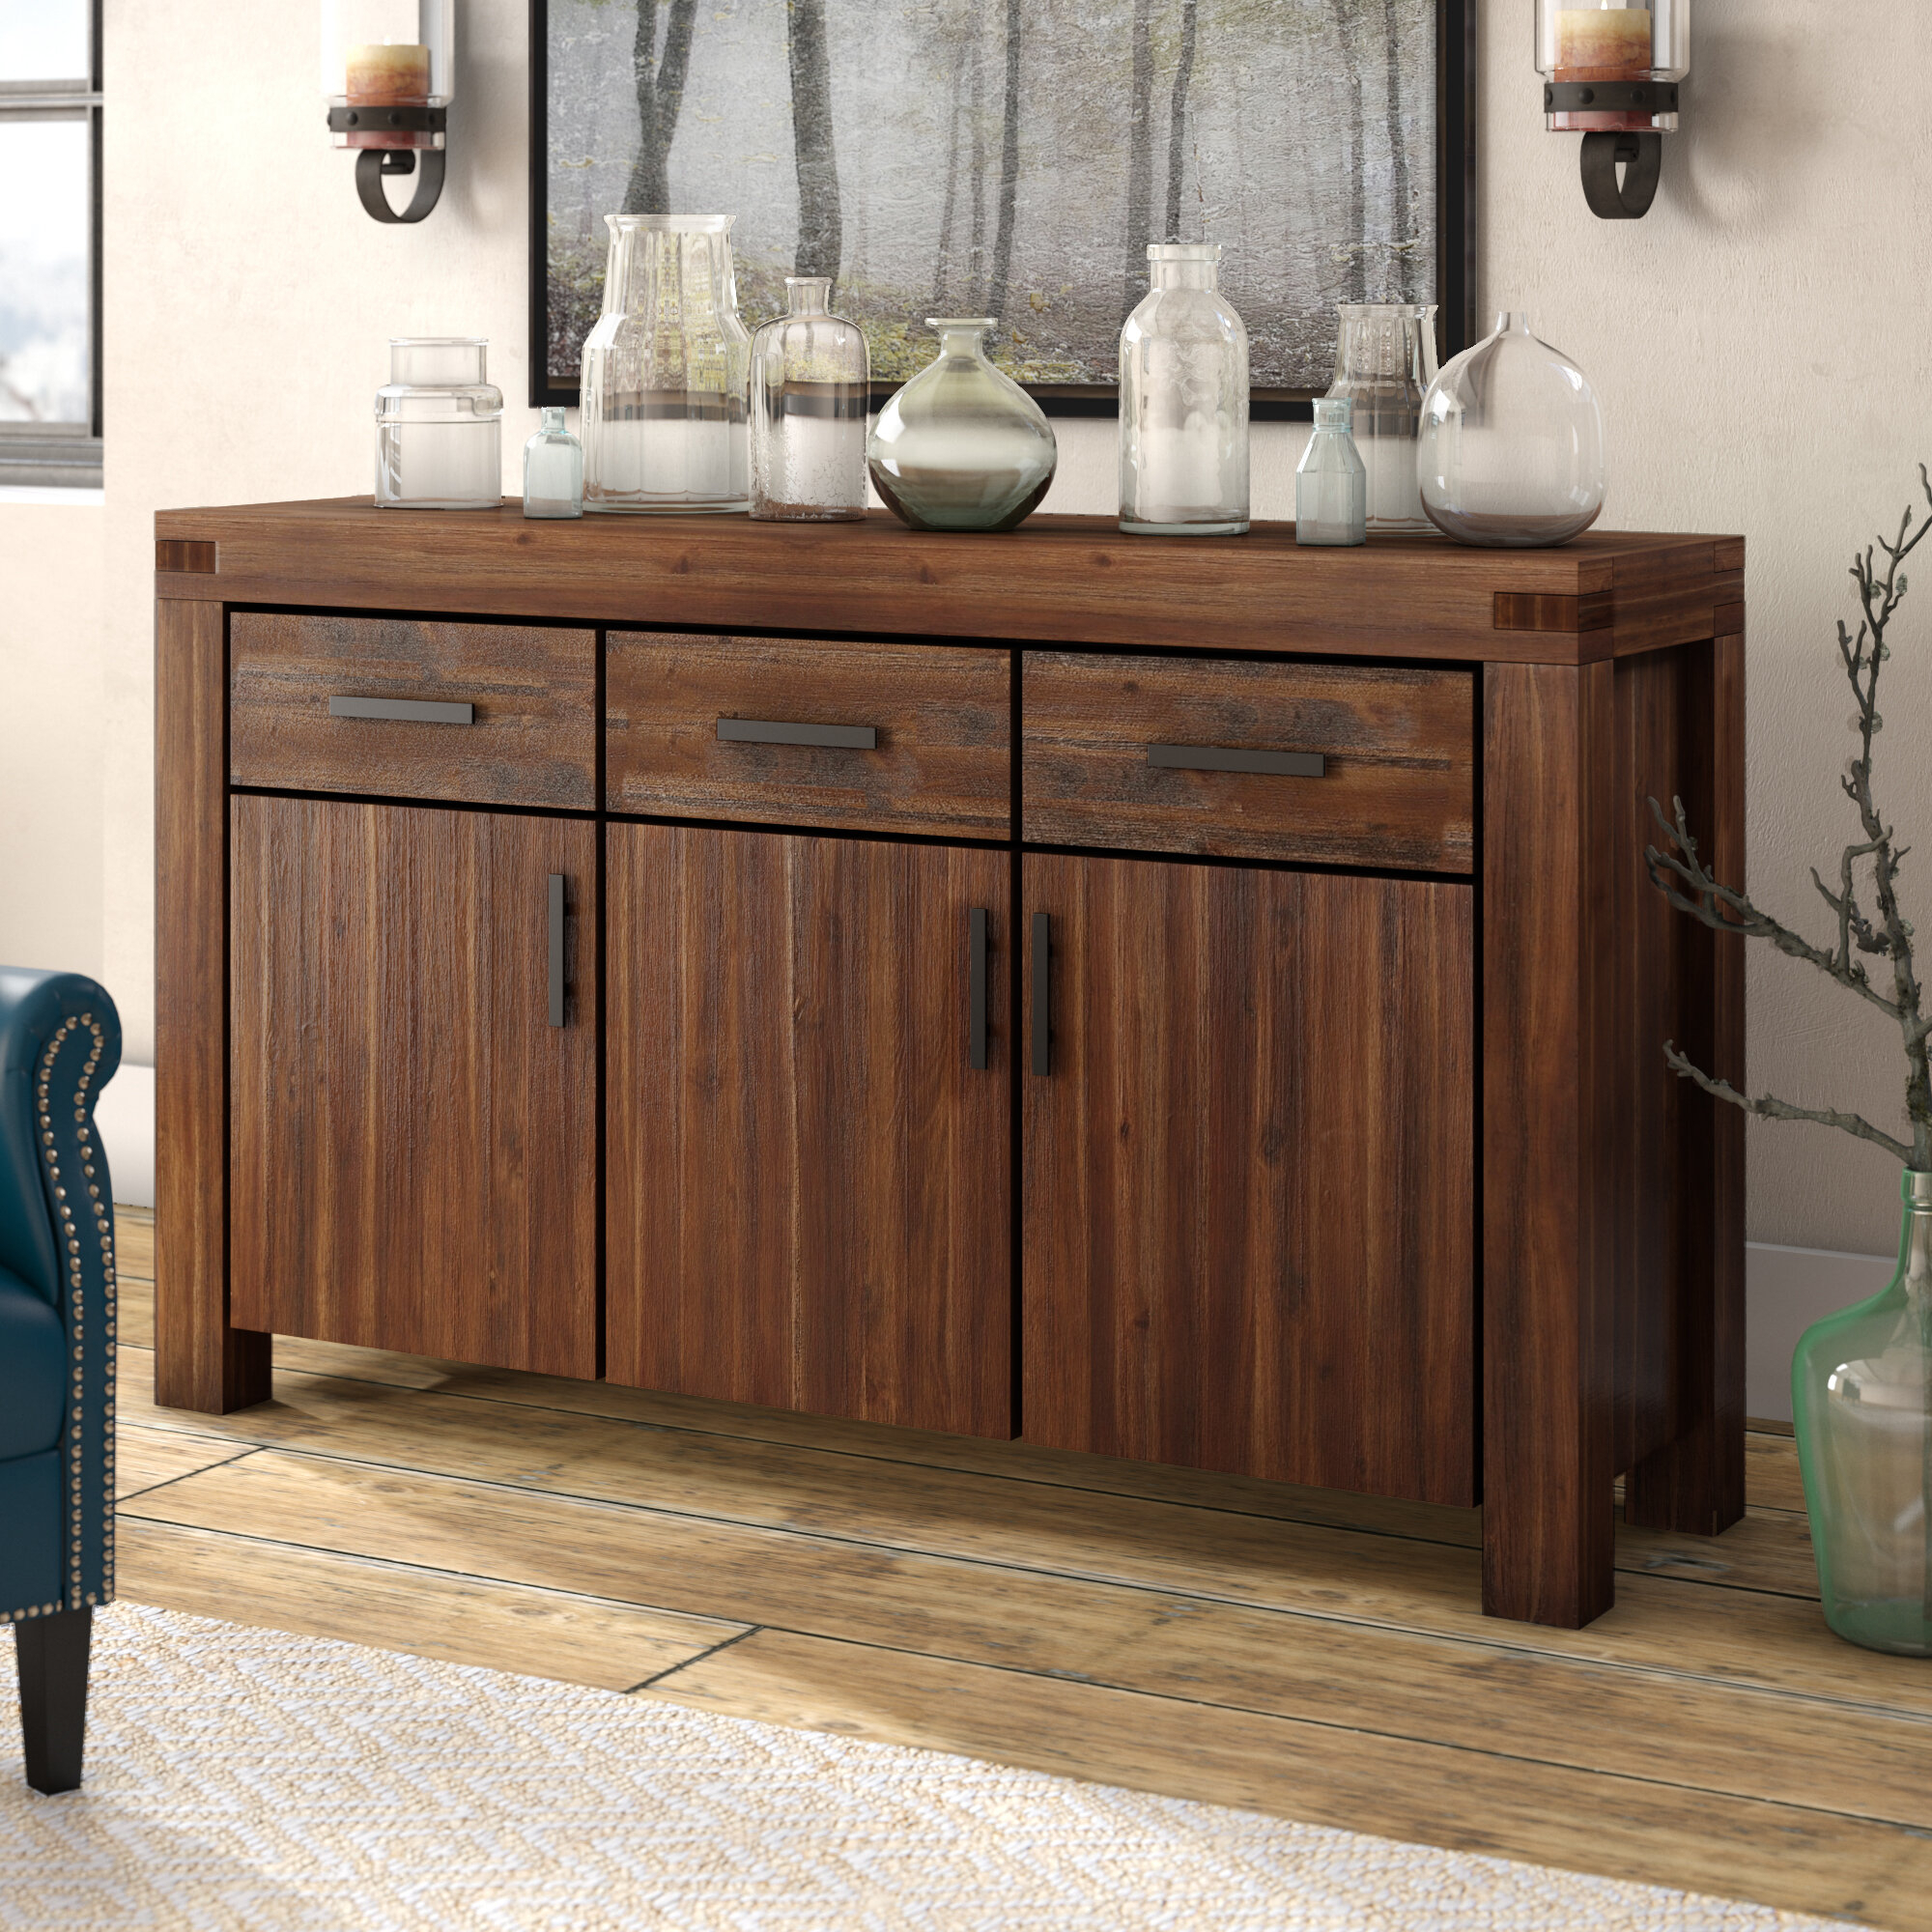 Vintage Credenza You'll Love In 2019 | Wayfair Pertaining To Stephen Credenzas (View 30 of 30)